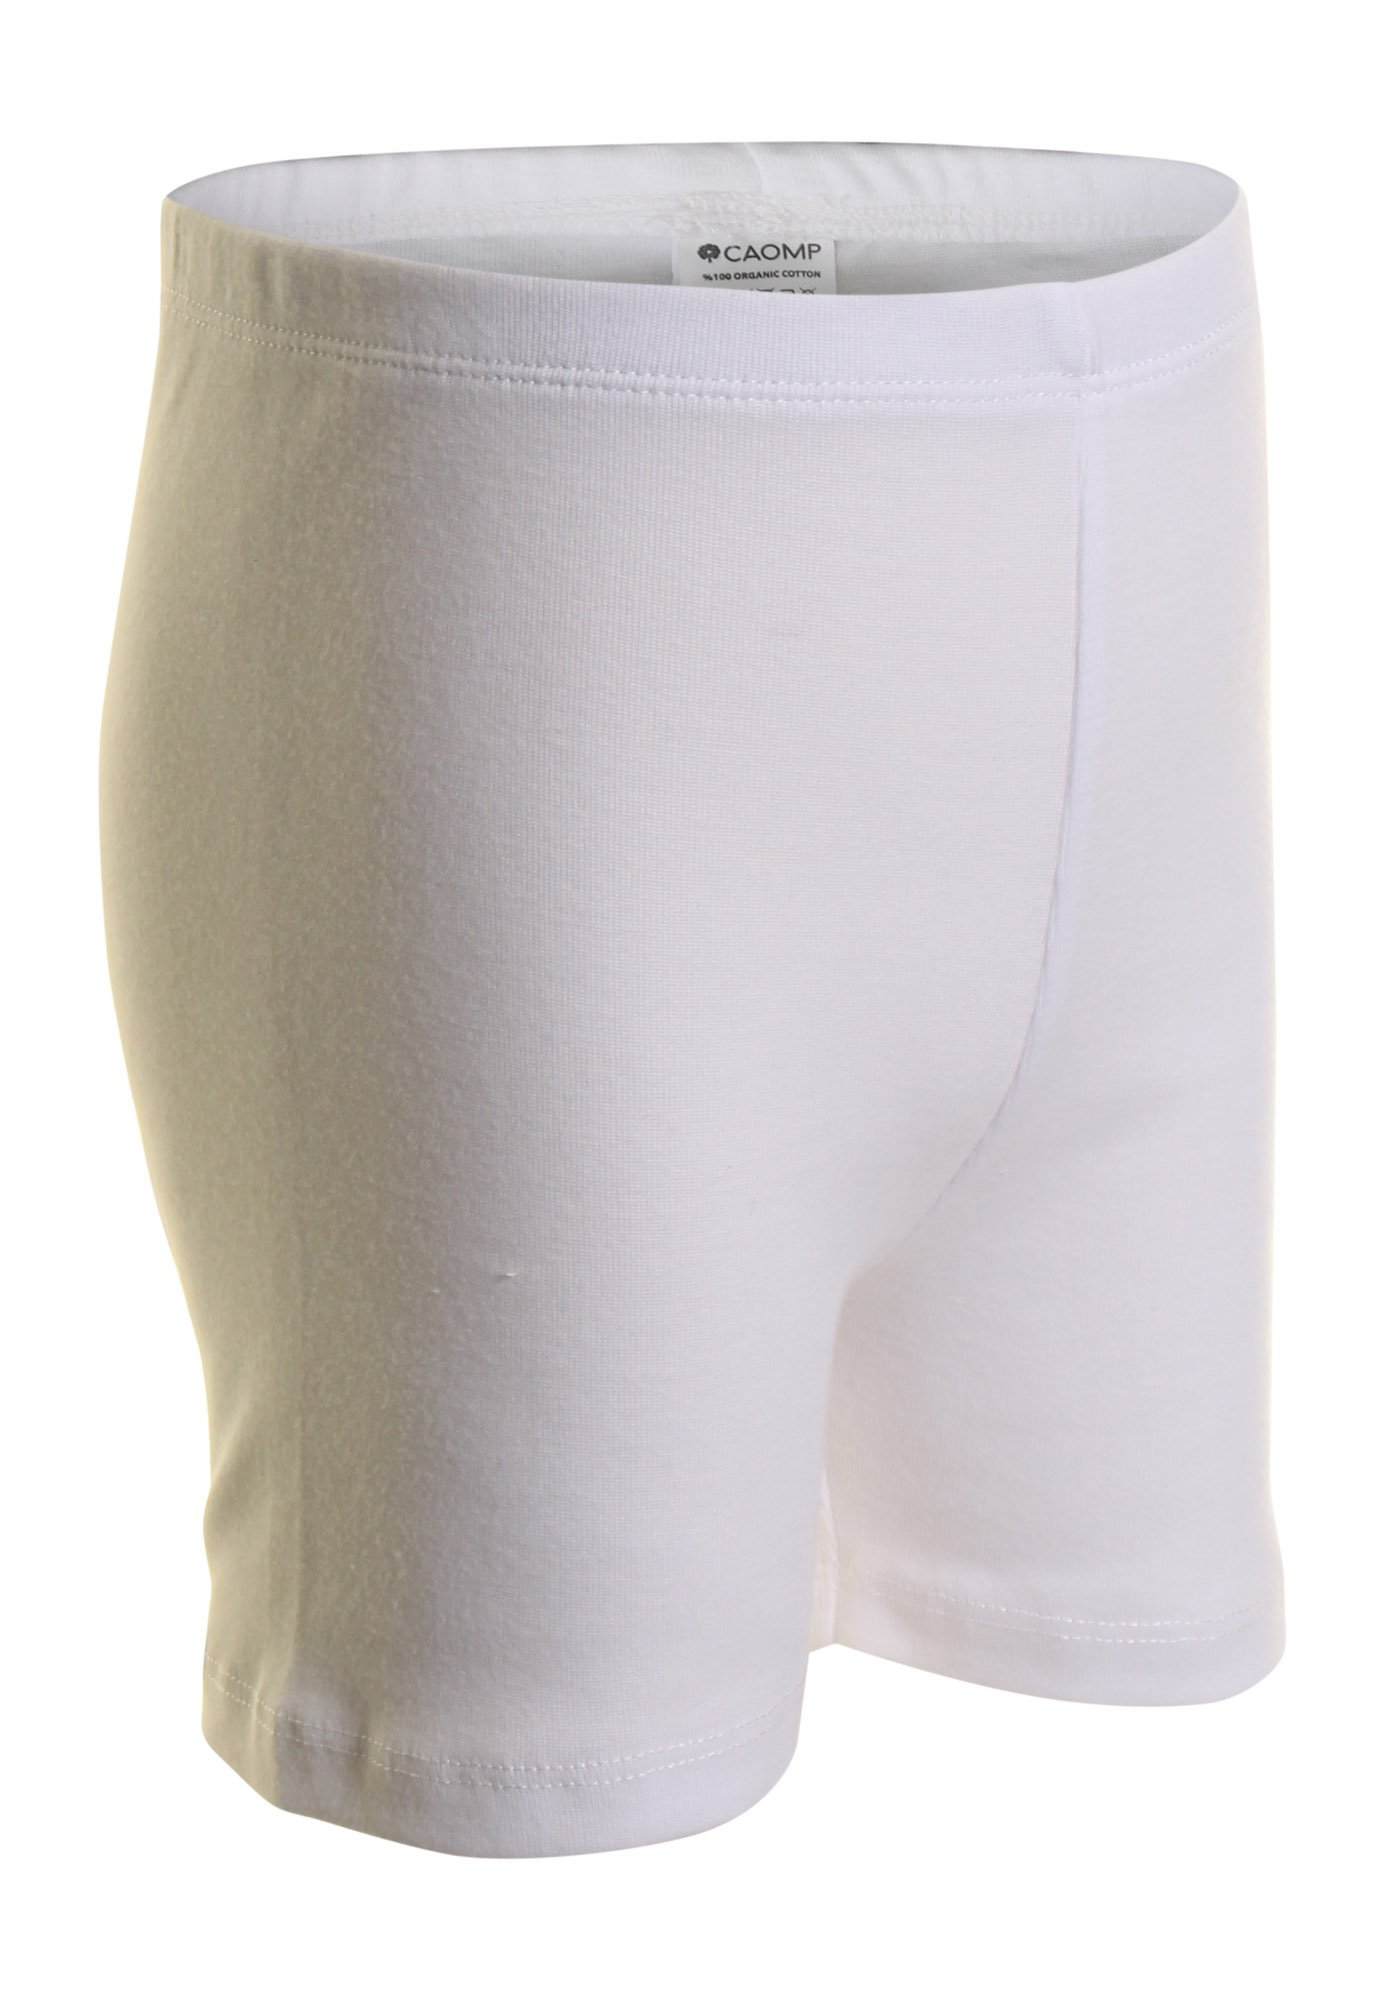 CAOMP Girls' Bike Short 100% Organic Cotton for Sports and Under Skirts (7-8, White)